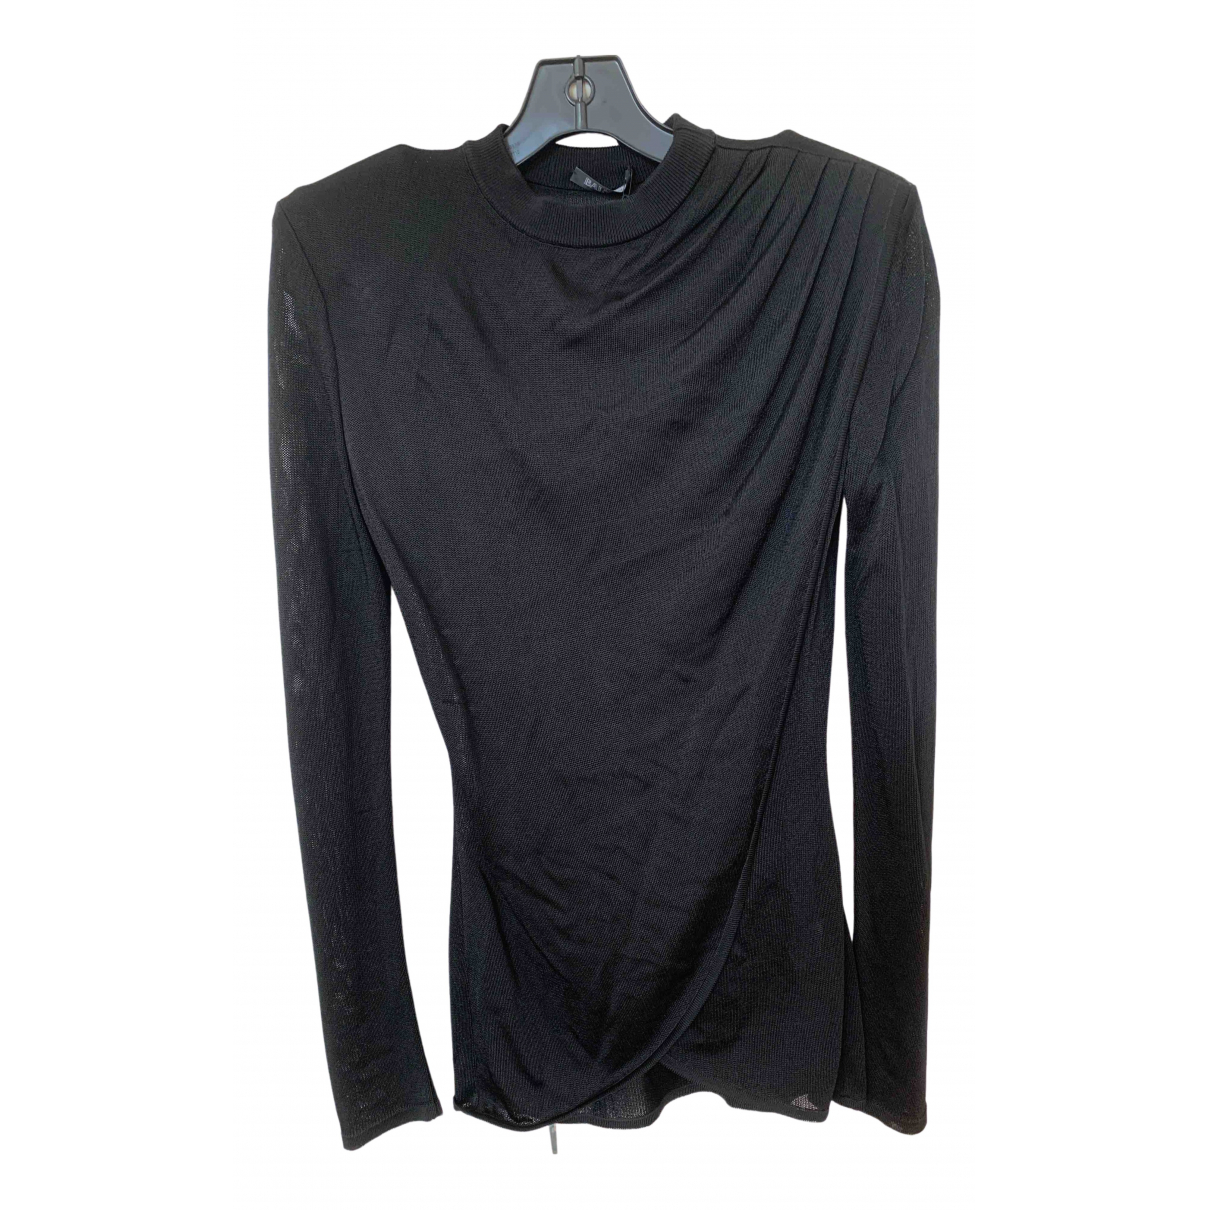 Balmain \N Black  top for Women 36 FR